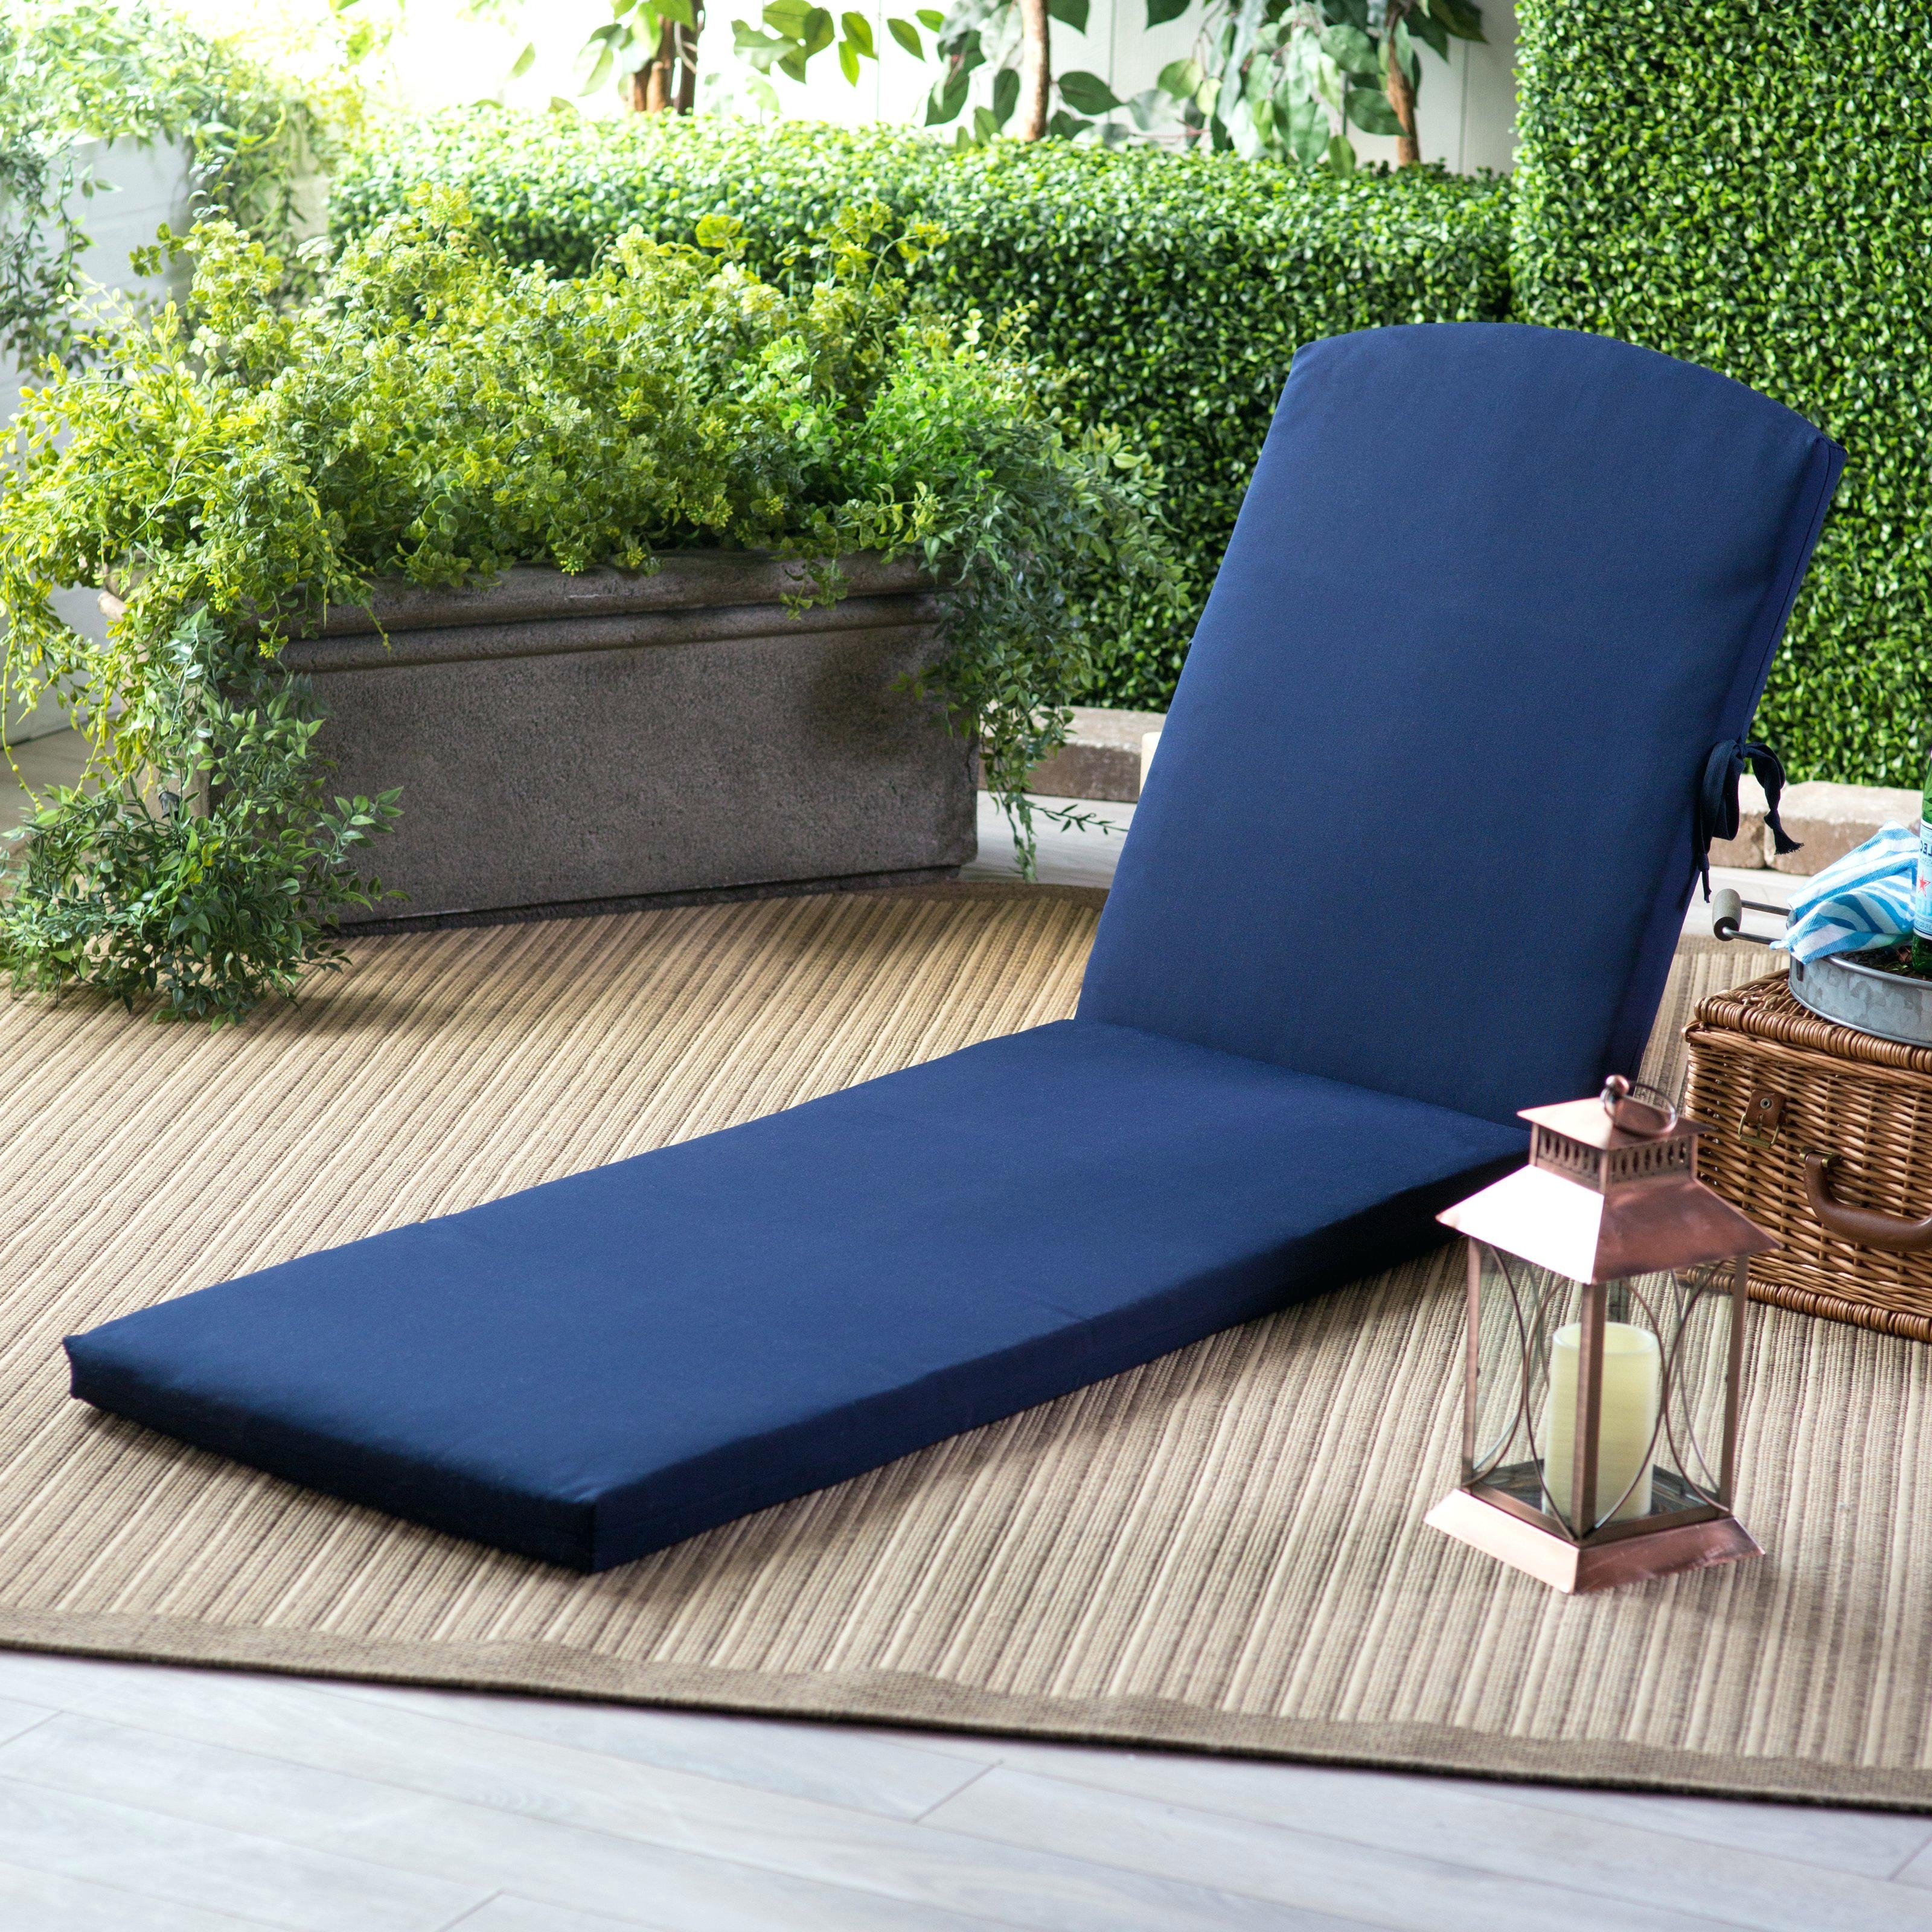 Orbit Chaise Lounges Throughout Trendy Orbit Chaise Lounge Replacement Cushions – Mariaalcocer (View 6 of 15)